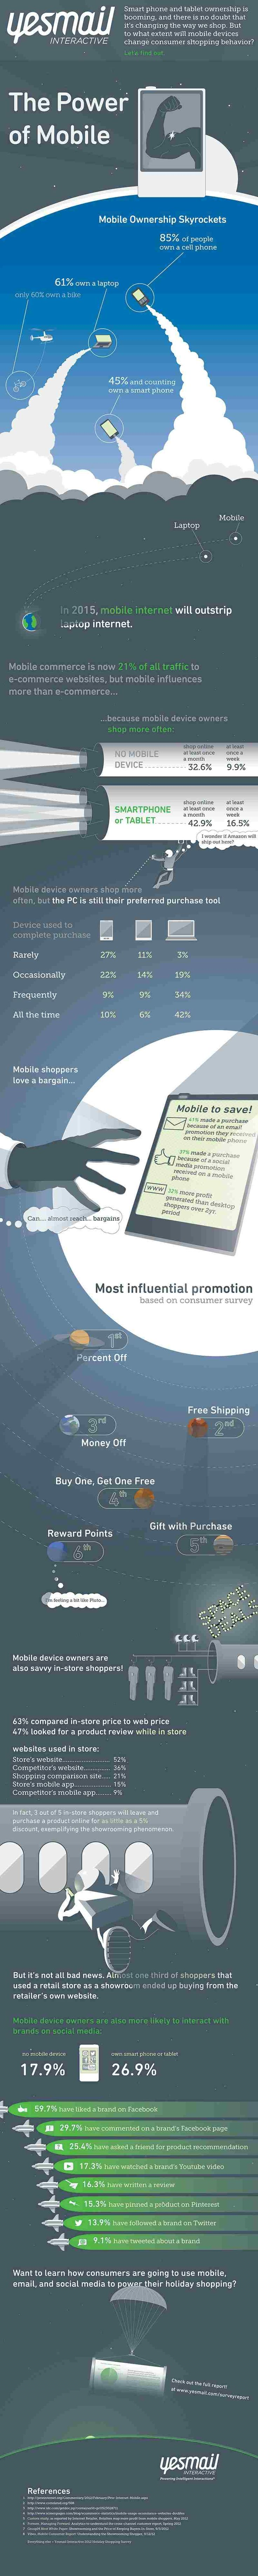 Infographic on the The Power of Mobile | MarketingProfs